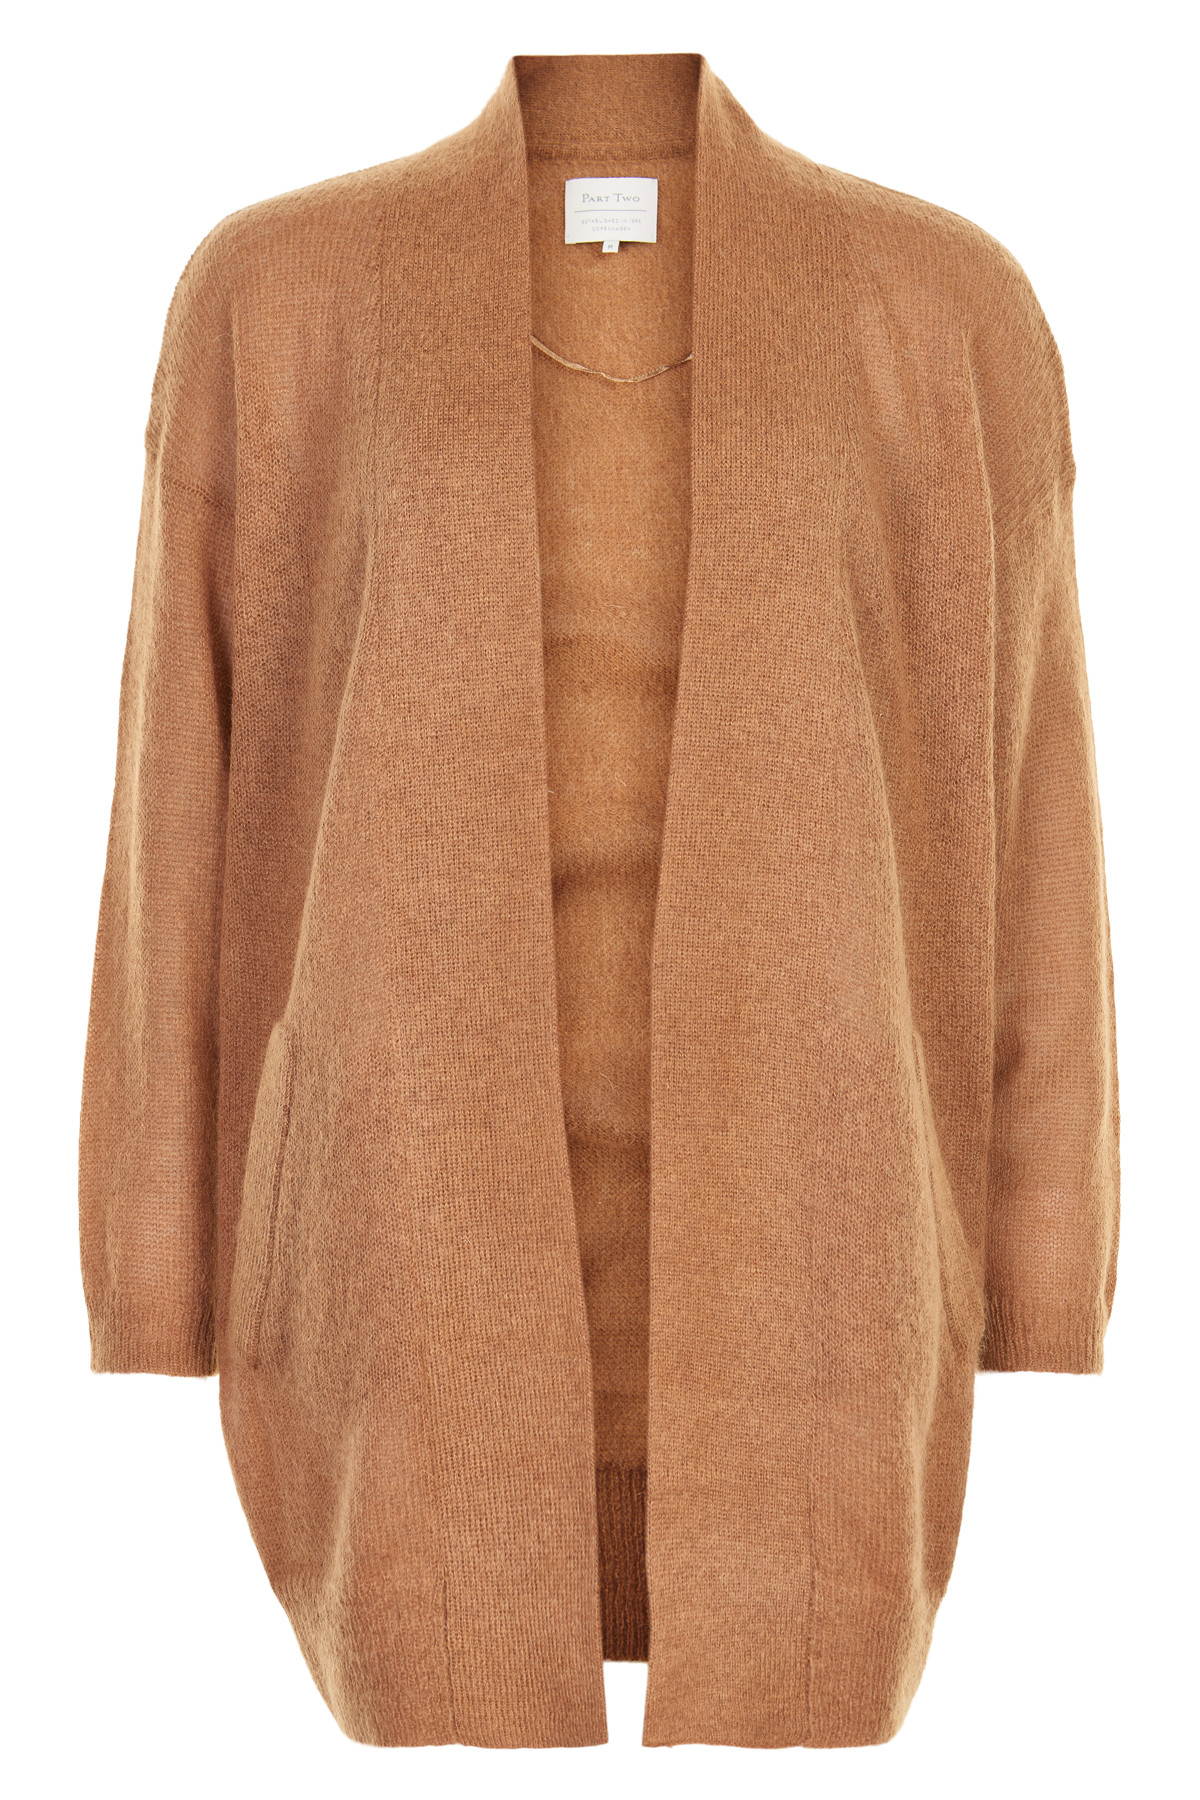 Image of   PART TWO TYLER CARDIGAN 30304435 T (Tobacco Brown 33163, XS)